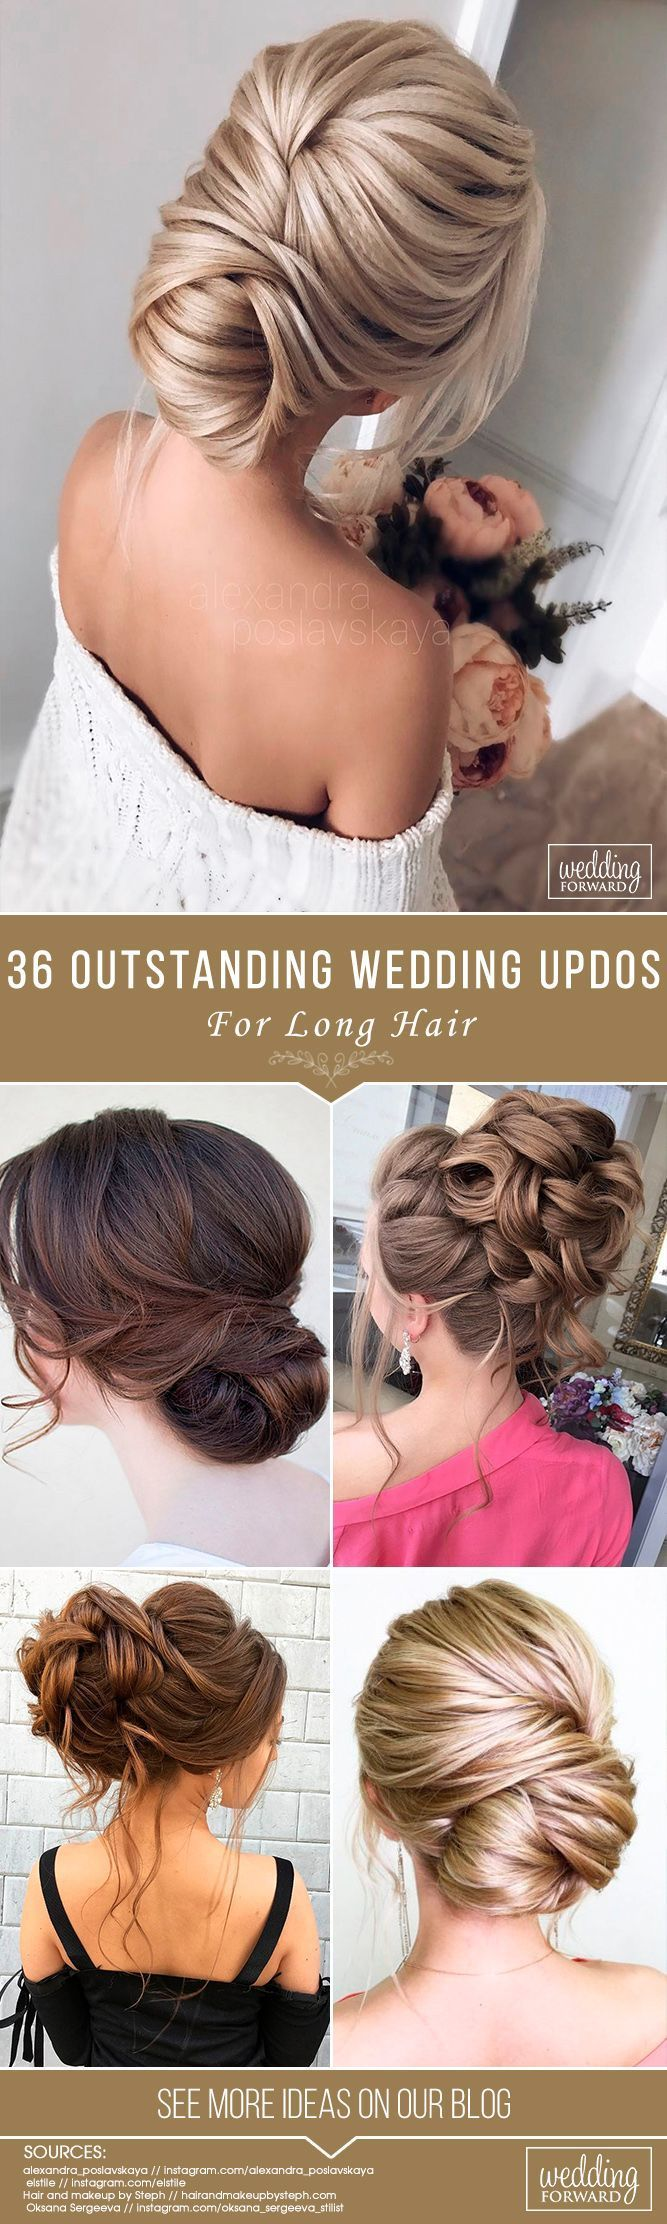 36 Most Outstanding Wedding Updos For Long Hair ❤️ We have collected the most outstanding wedding updos for long hair. Opt the best variant for your inspiration! Be trendy on your wedding! See more: http://www.weddingforward.com/wedding-updos-for-long-hair/ #weddings #hairstyles